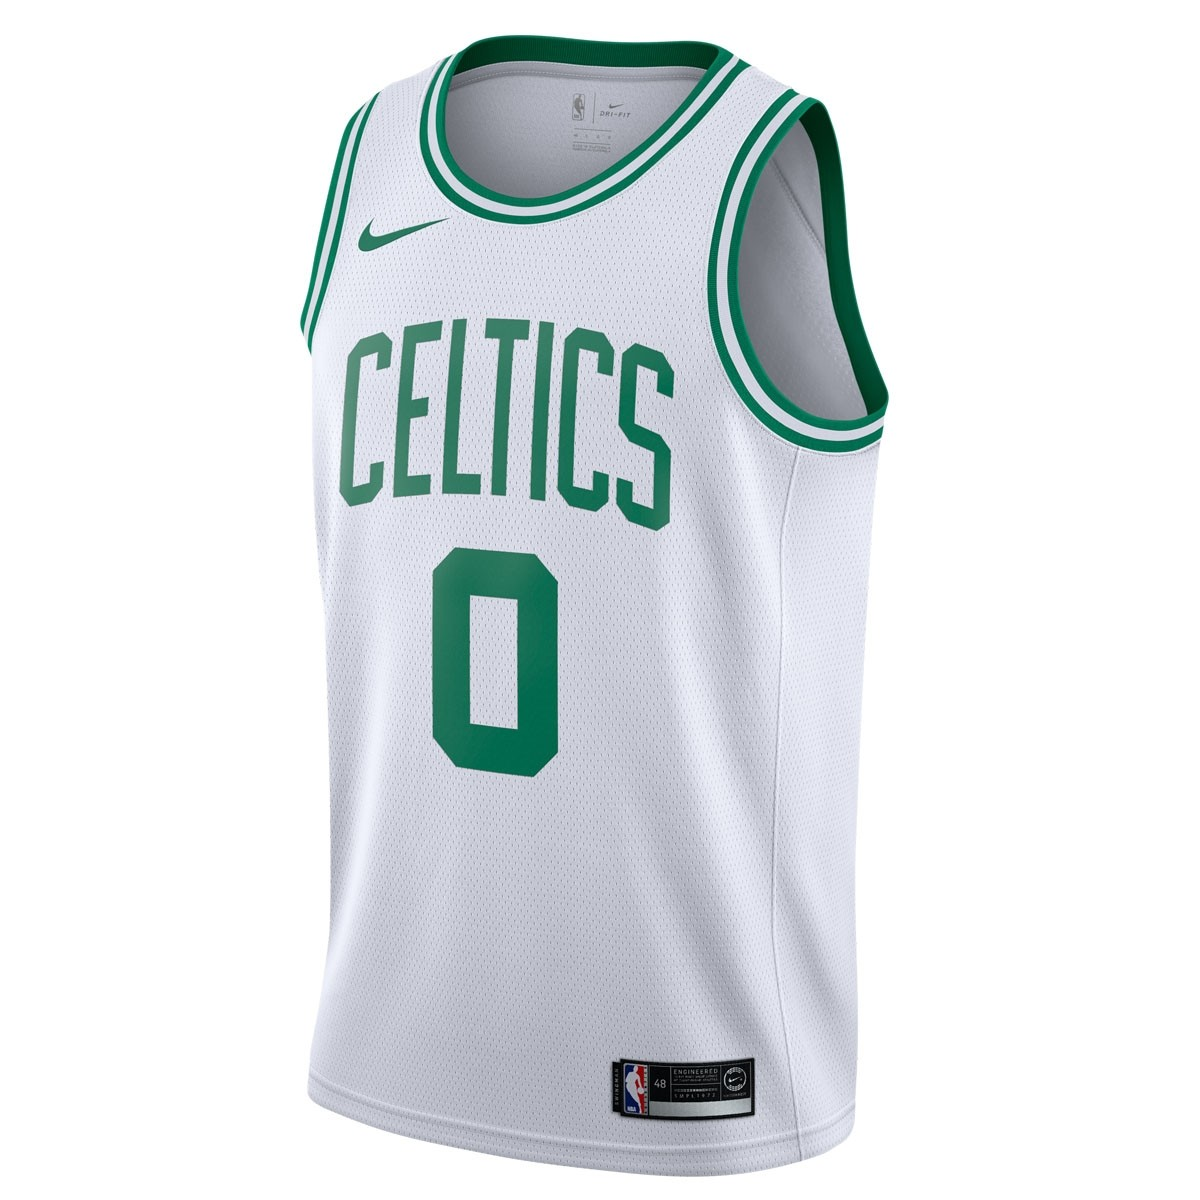 Nike NBA Celtics Swingman Jersey Tatum 19/20 'Association Edition'